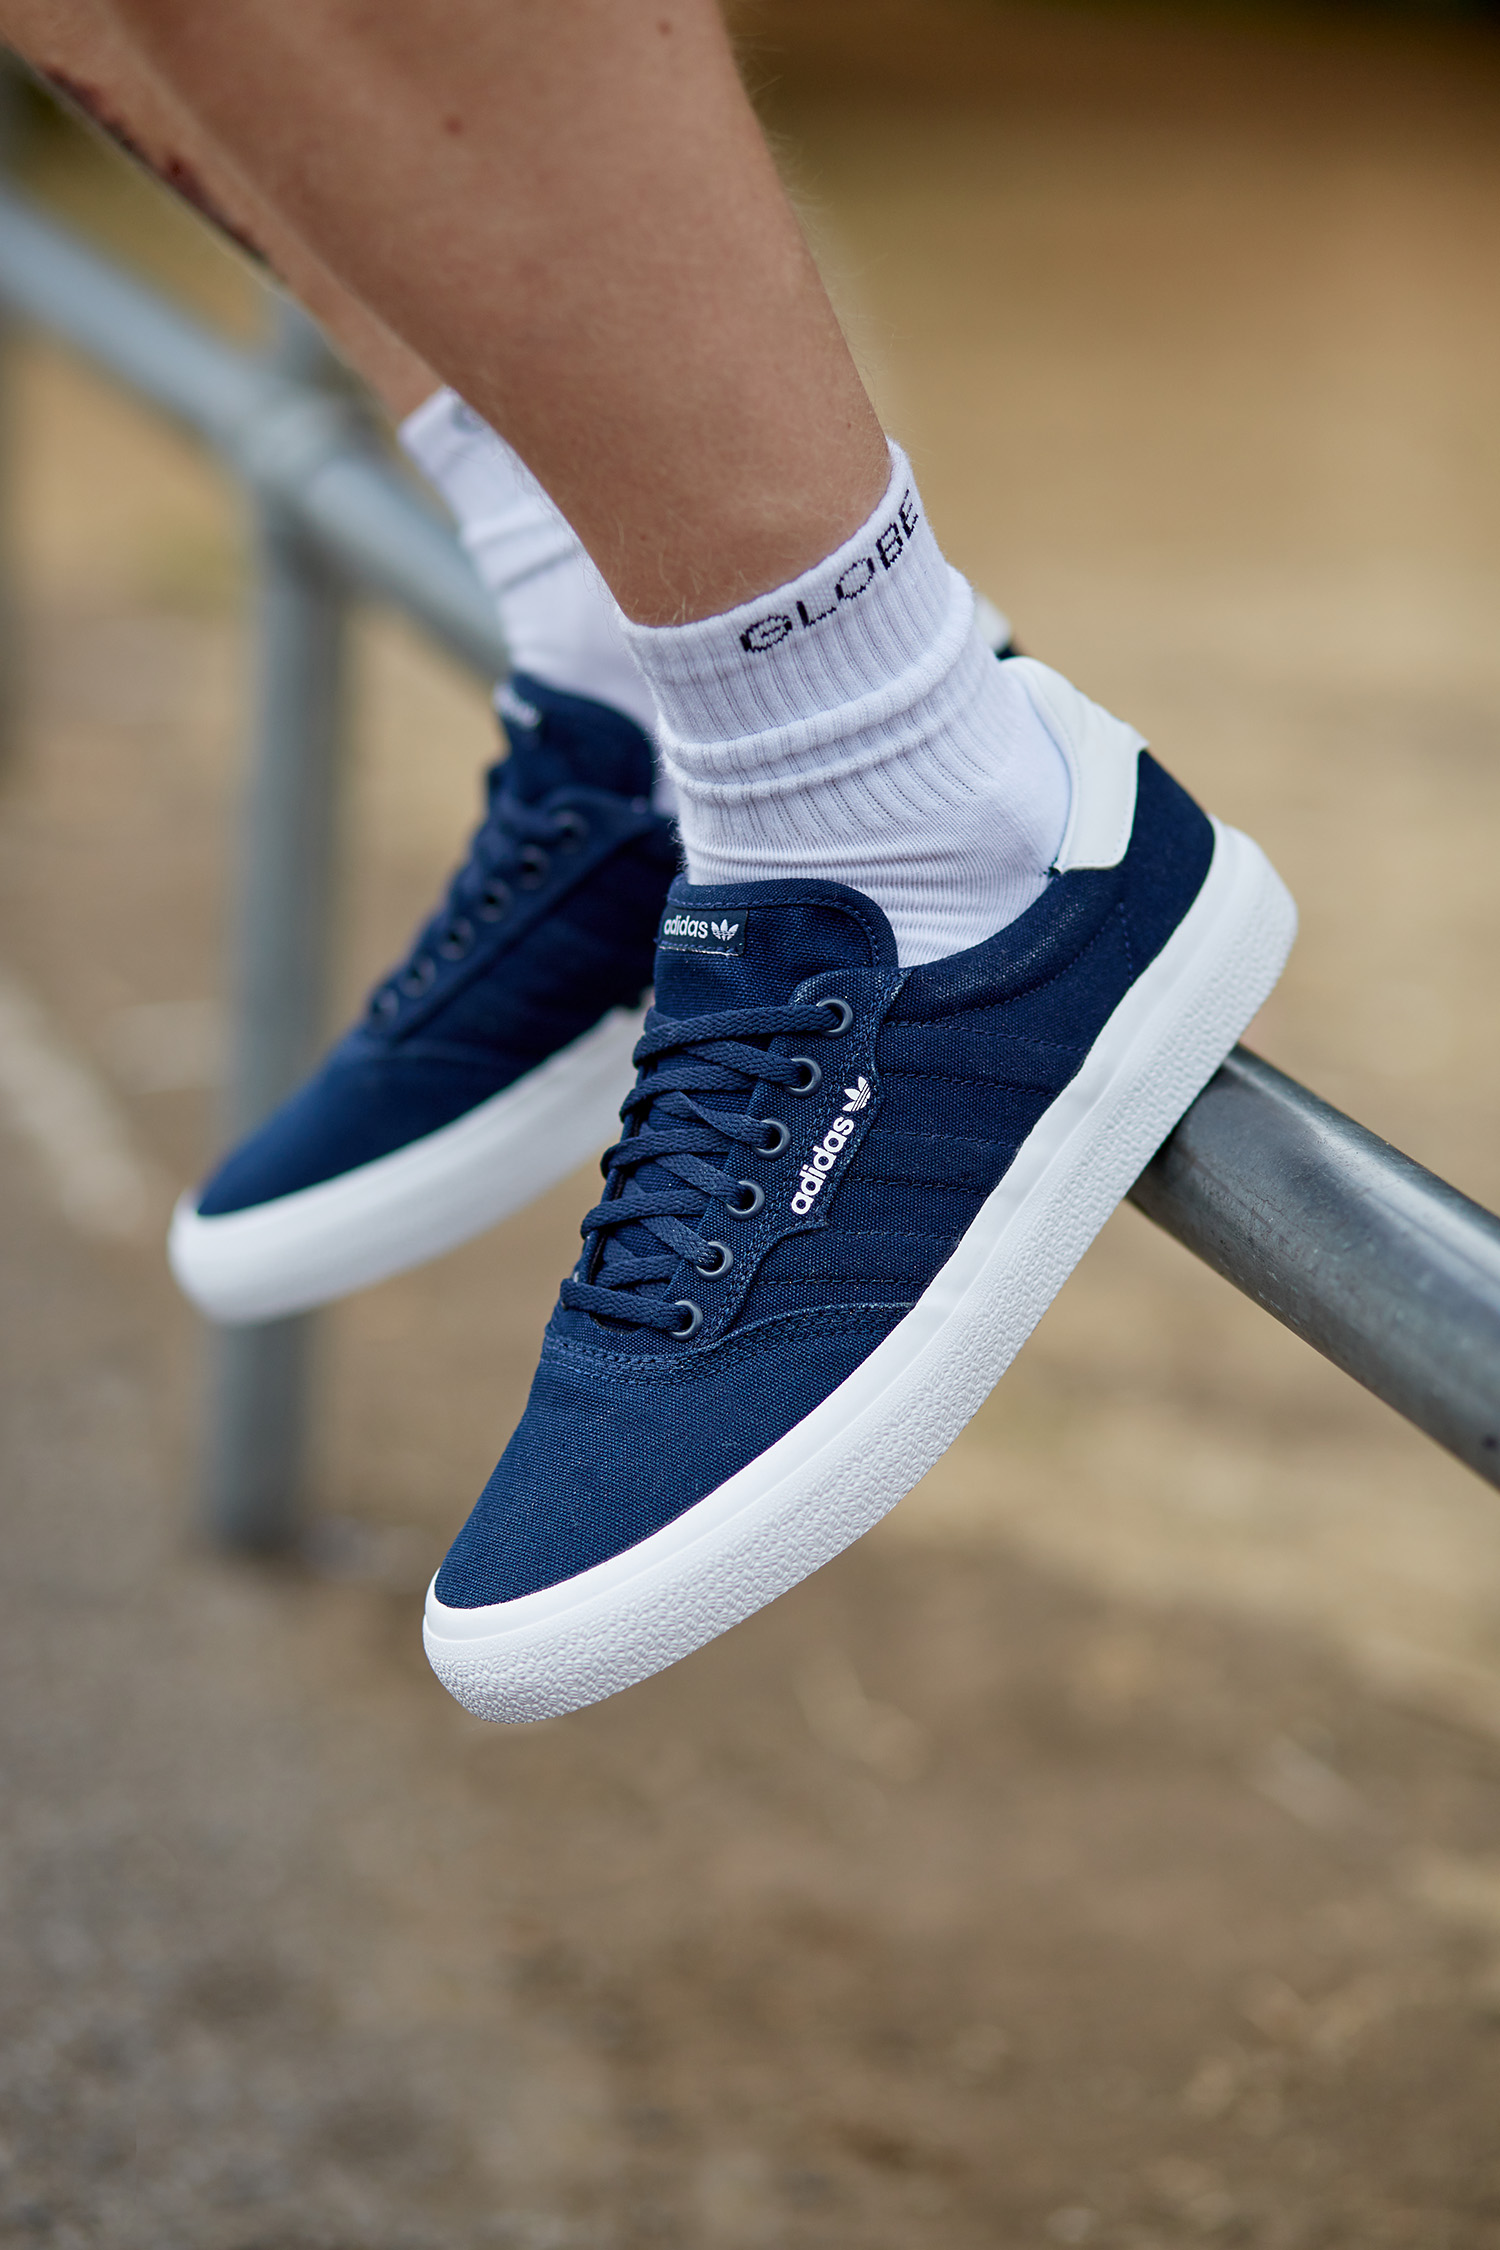 adidas shoes (freestyleXtreme mag feature)